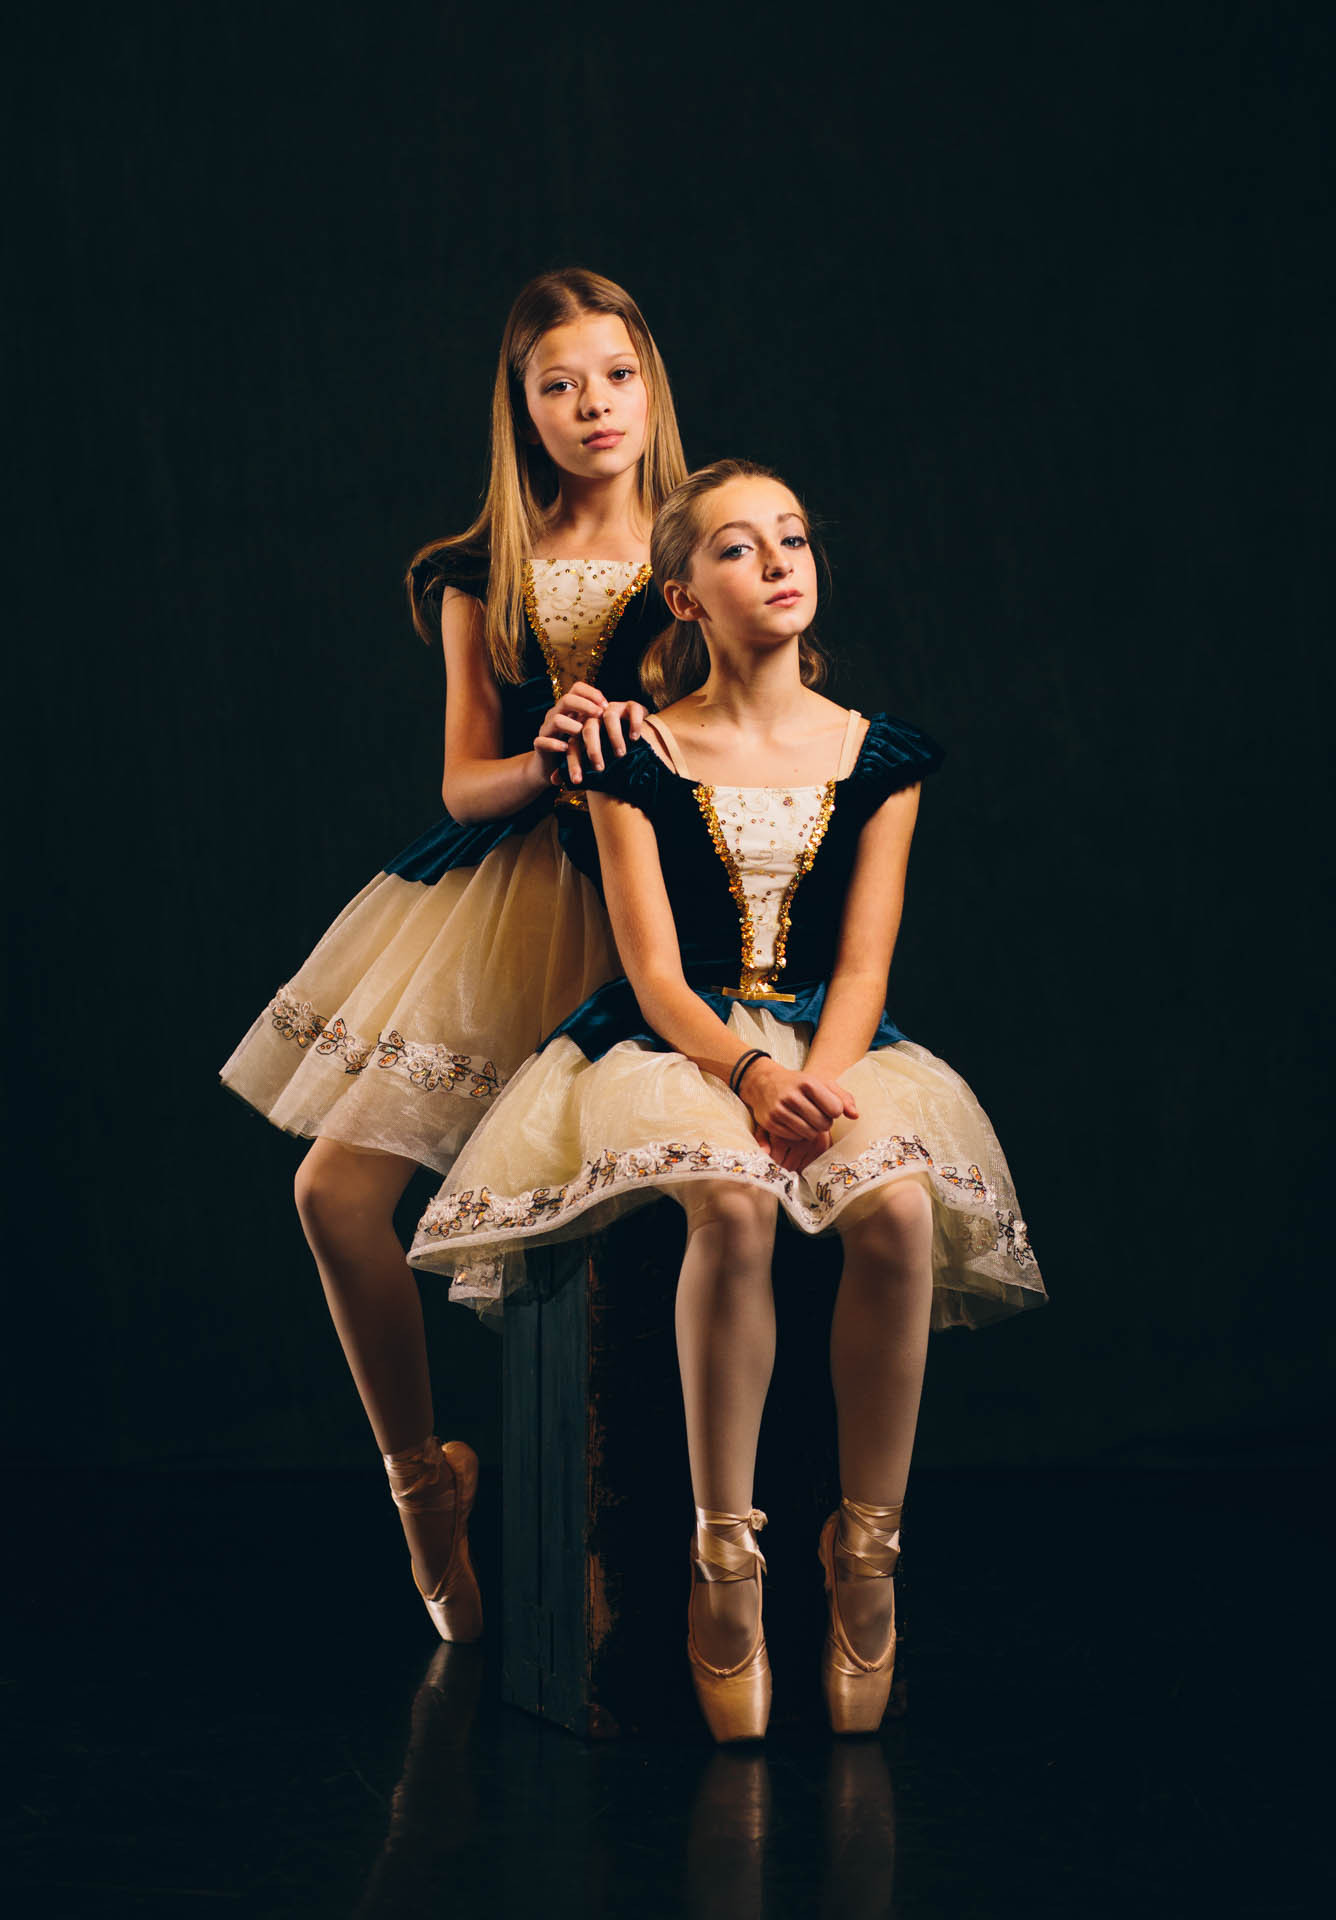 anna-kyliah-ballerina-girls-blue-and-gold-pointe-shoes-8534